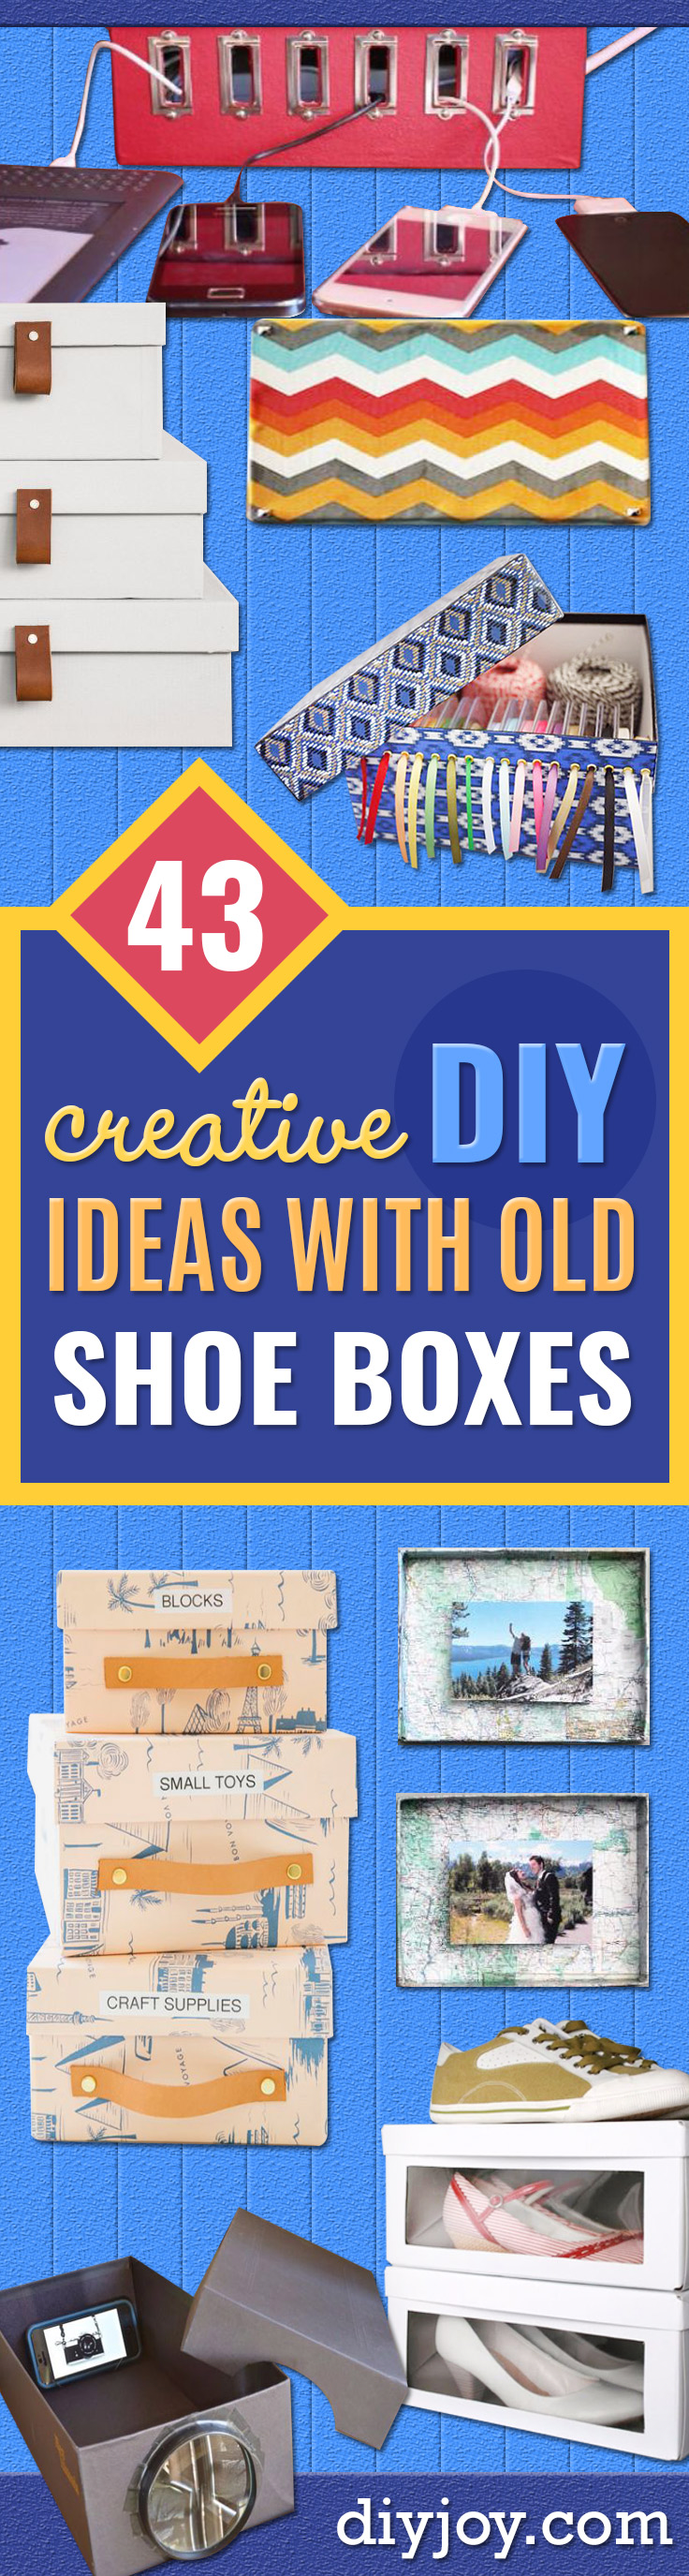 Merveilleux 43 Creative DIY Ideas With Old Shoe Boxes